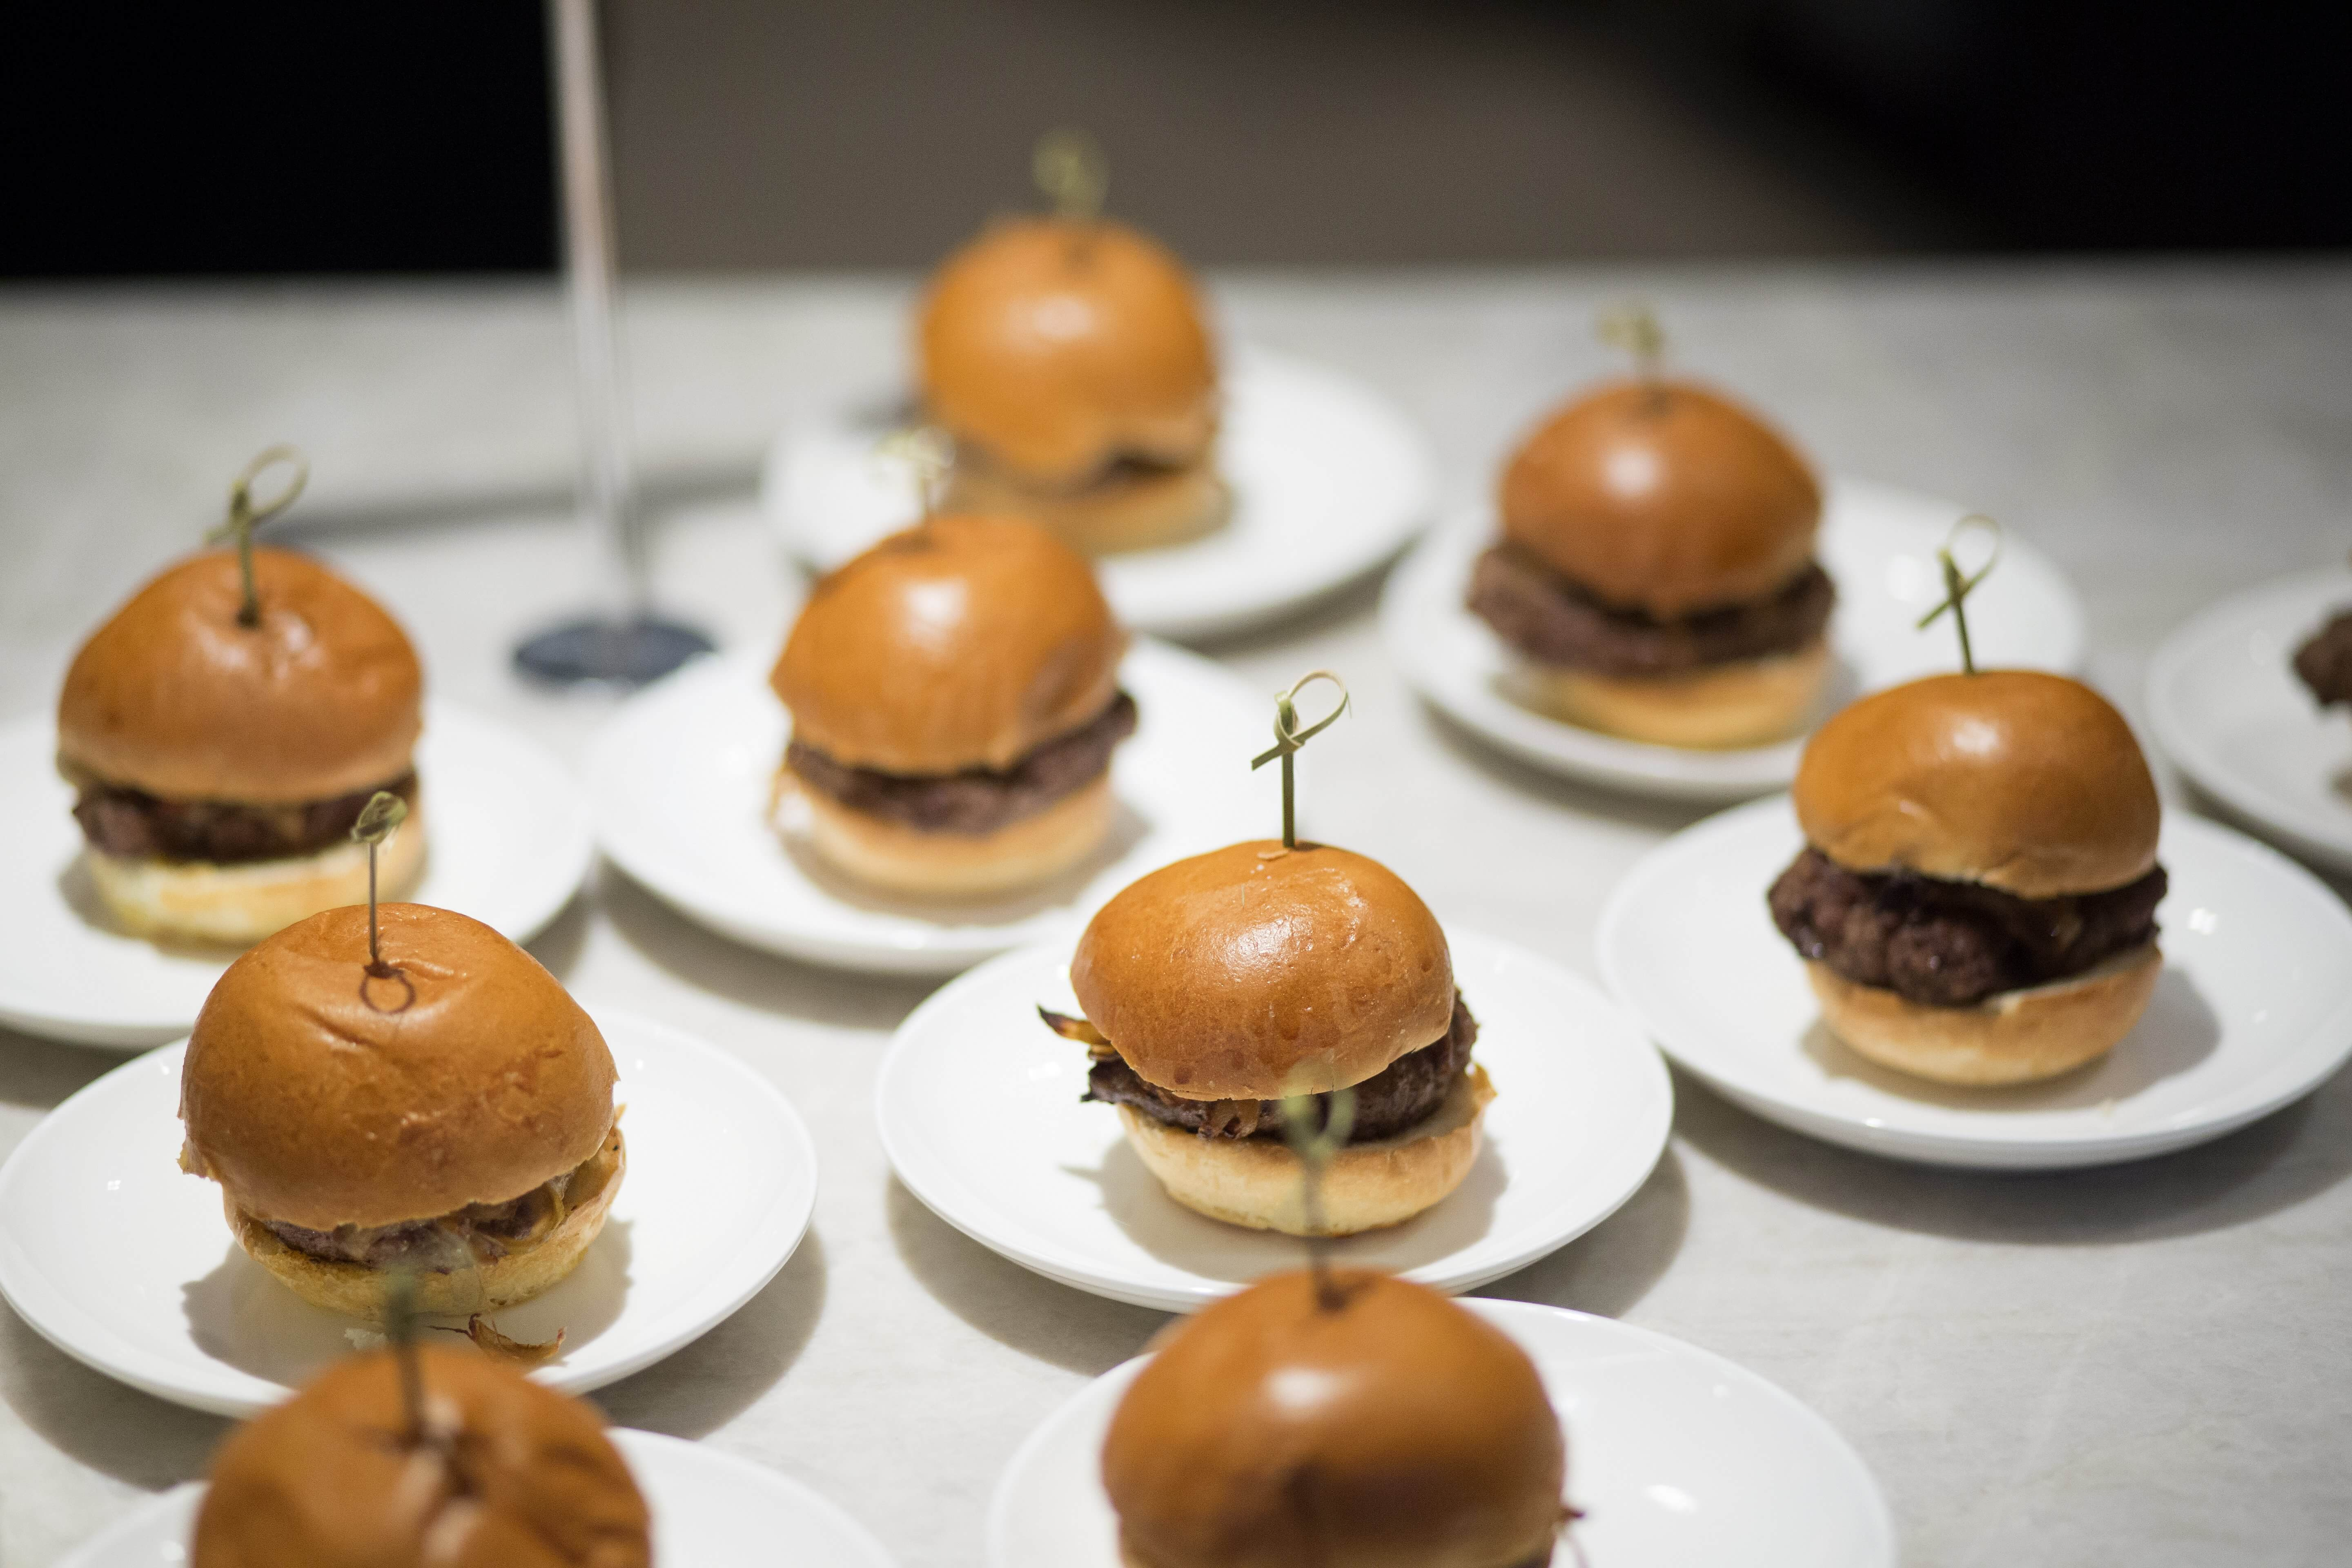 Tender sliders were served to guests to snack on throughout the evening.